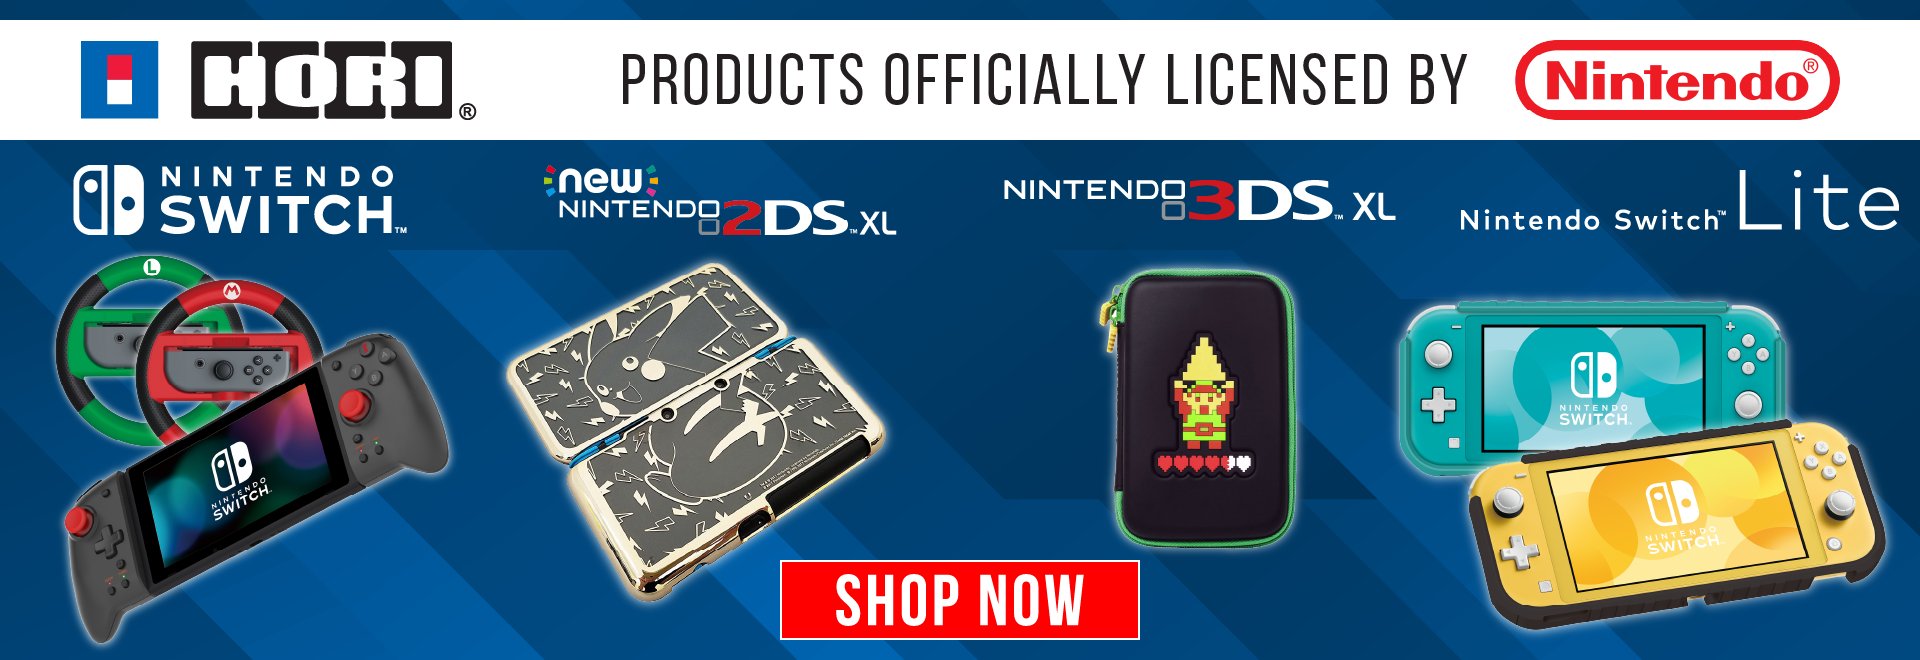 Hori - Products Officially Licensed by Nintendo